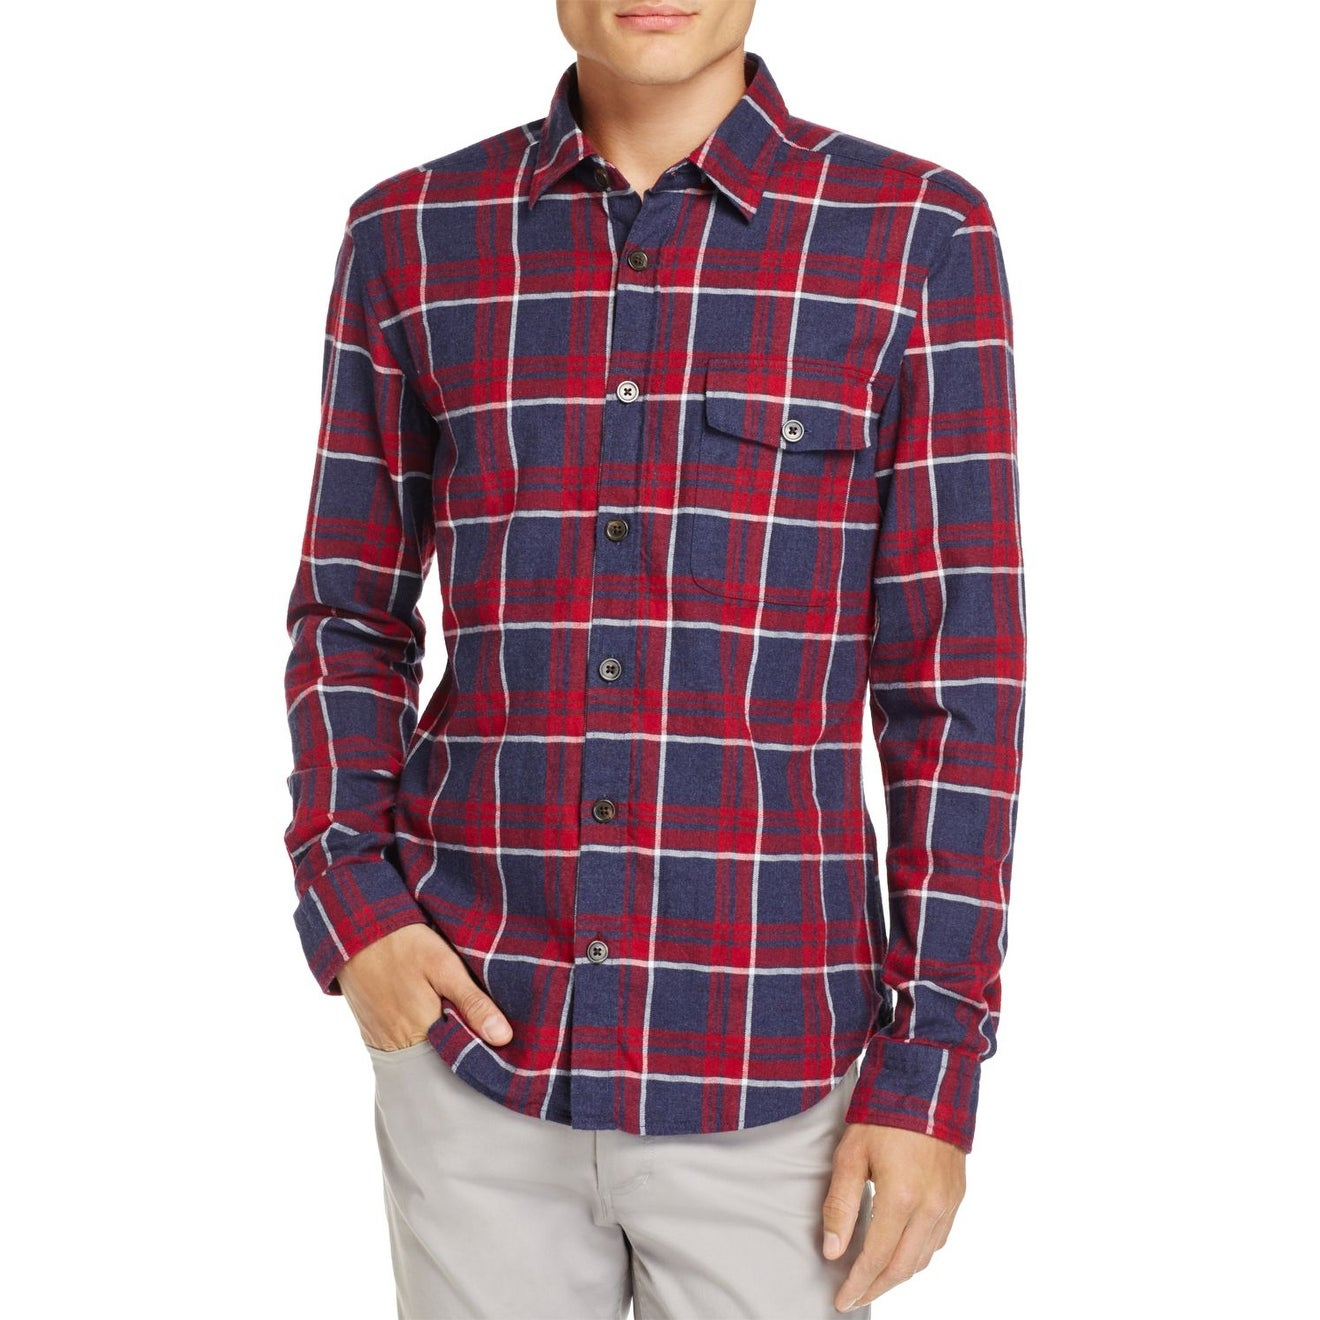 7ec13ec38 Hugo Boss Shirts | Find Great Men's Clothing Deals Shopping at Overstock